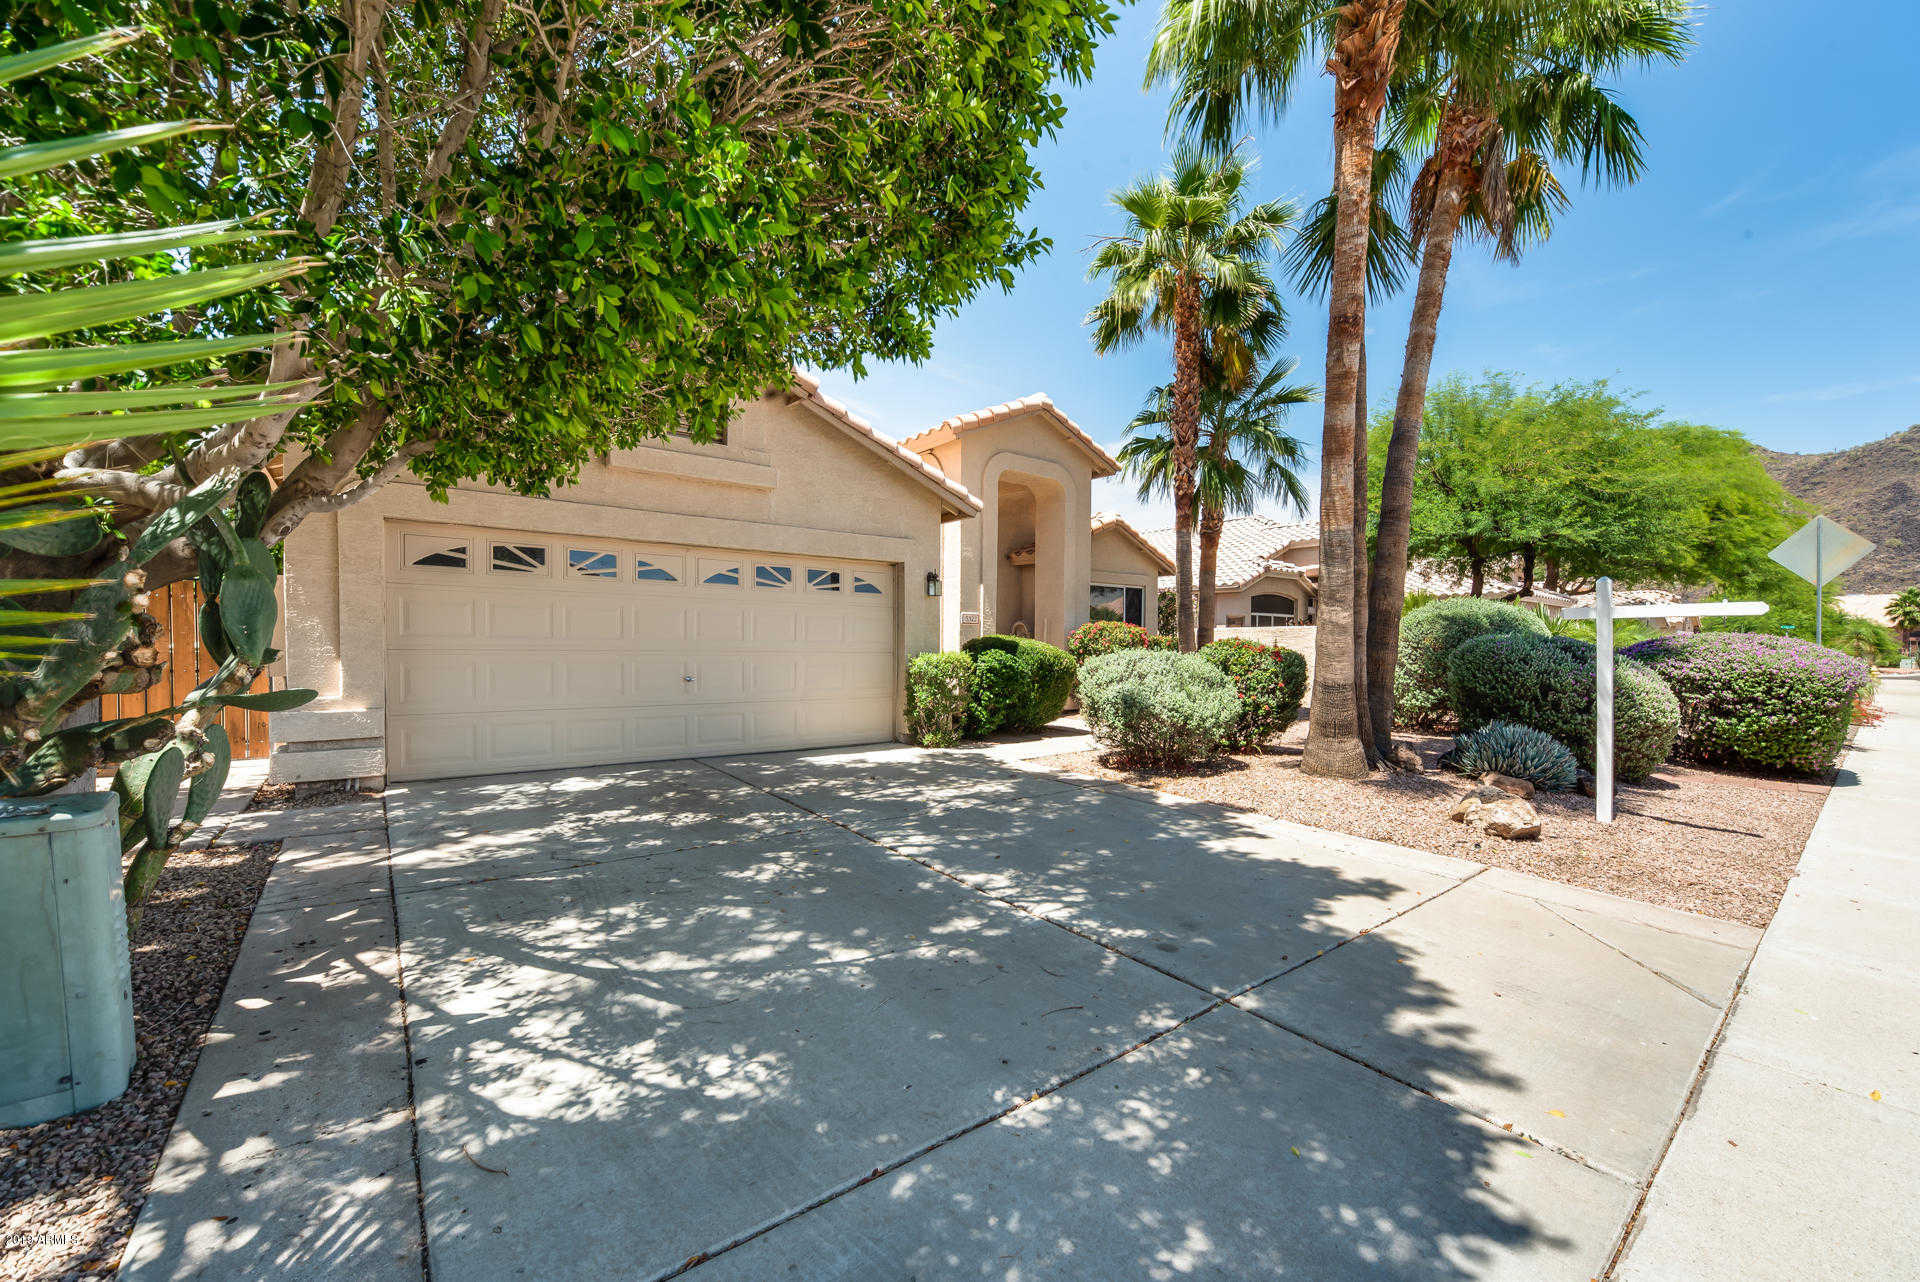 $410,000 - 3Br/2Ba - Home for Sale in Arrowhead Lakes, Glendale